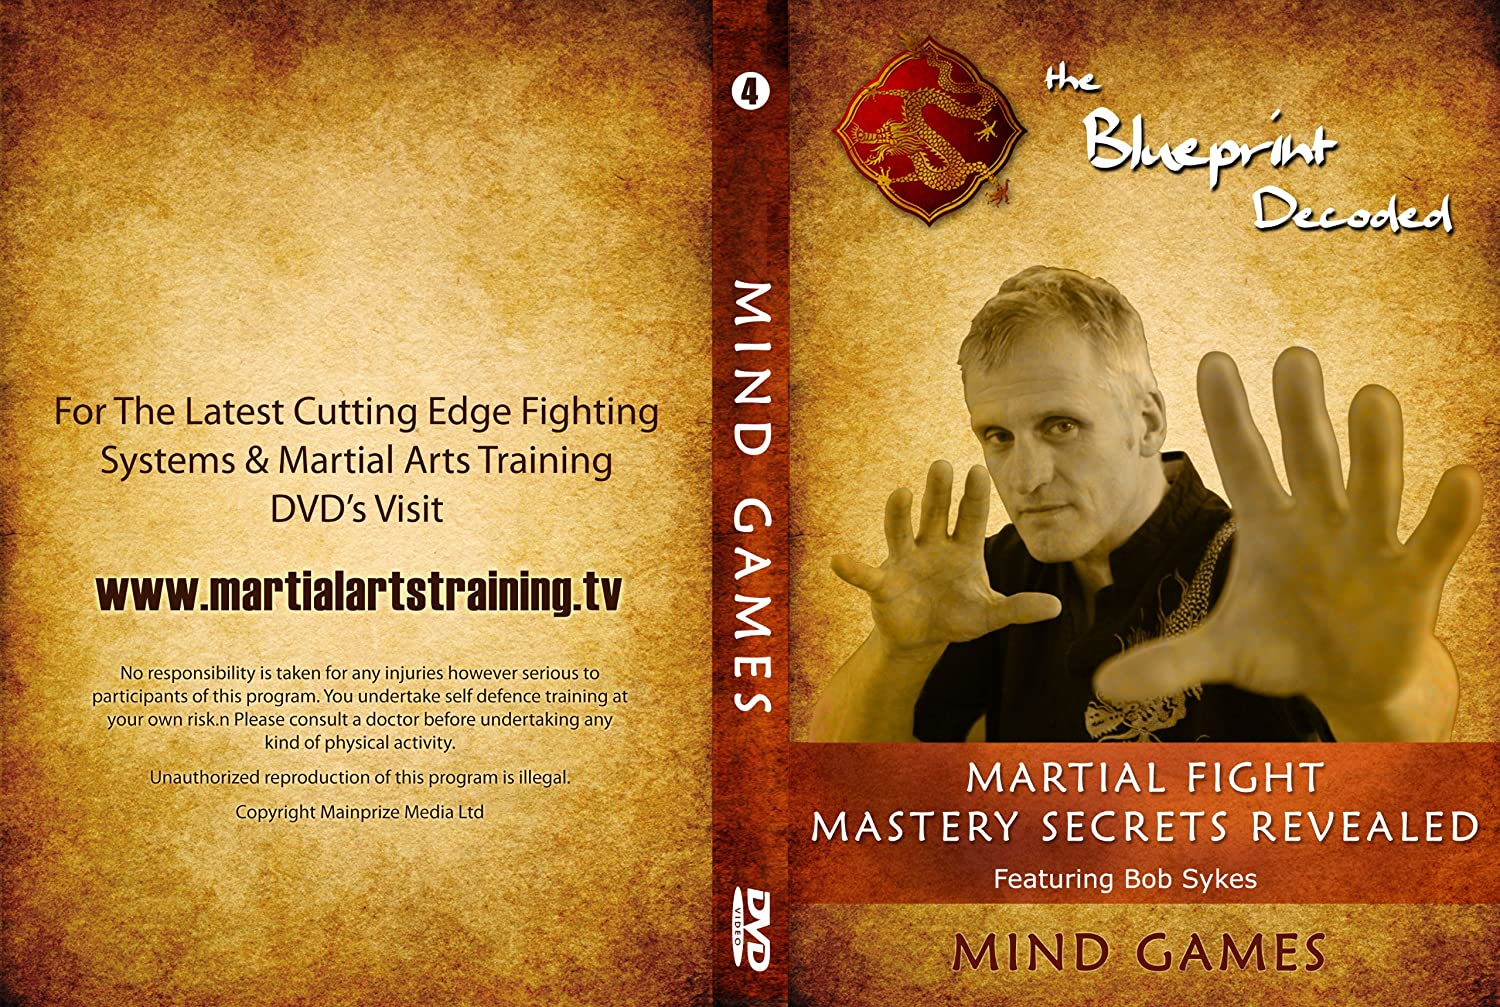 The blueprint decoded boxset martial arts mastery secrets revealed the blueprint decoded boxset martial arts mastery secrets revealed amazon bob sykes lee mainprize dvd blu ray malvernweather Gallery